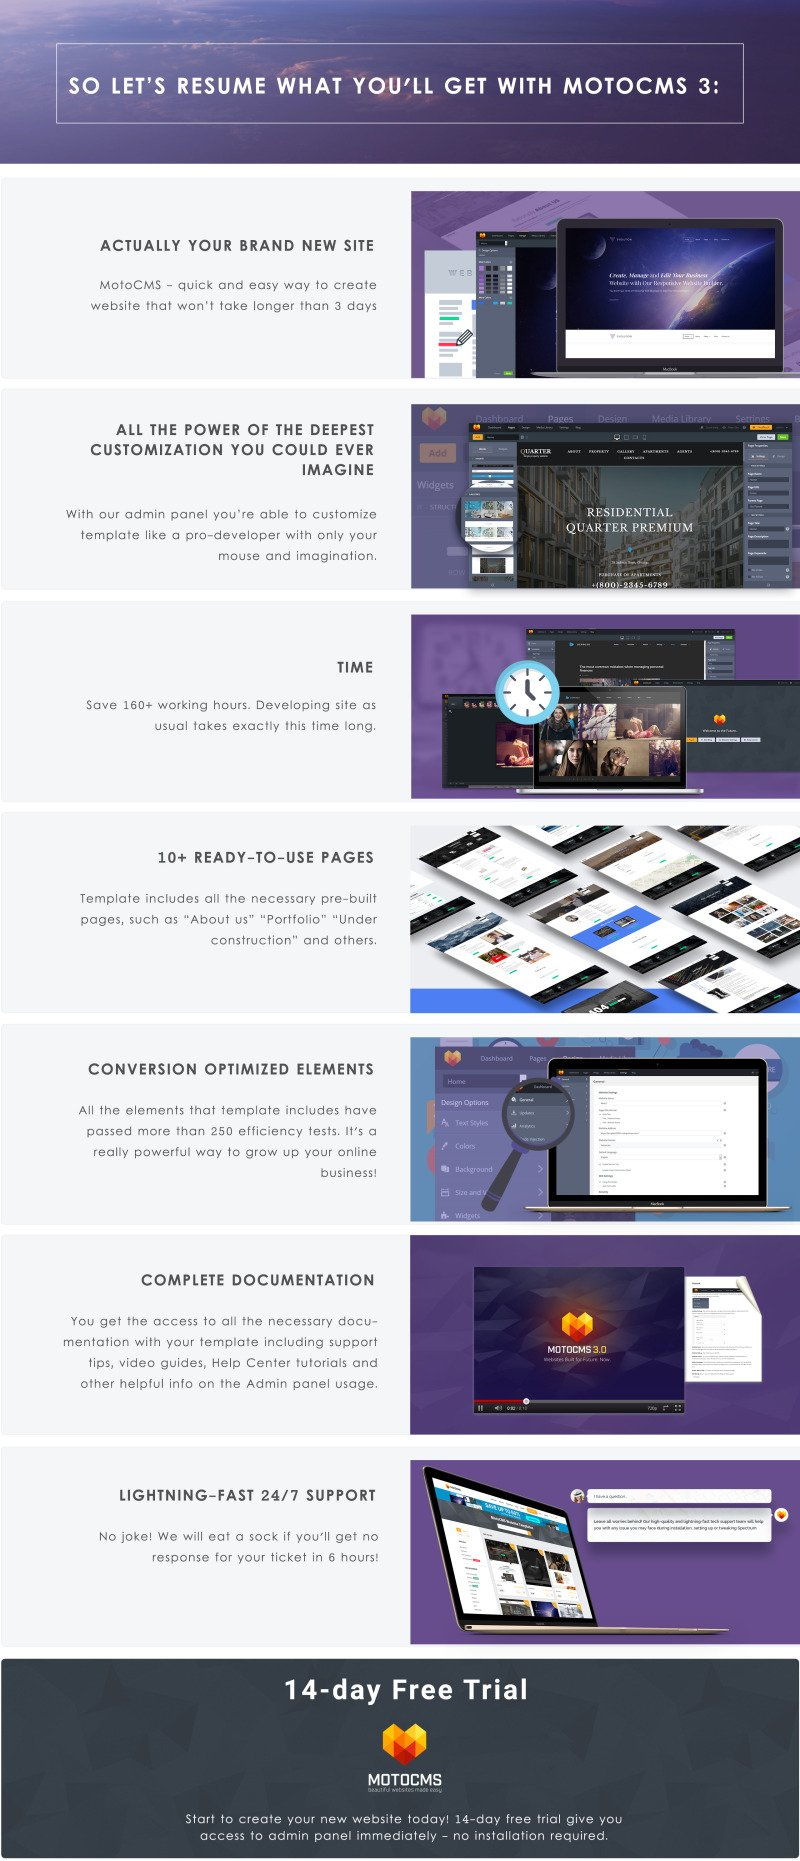 Augusto - Freelance Designer Moto CMS 3 Template - Features Image 6